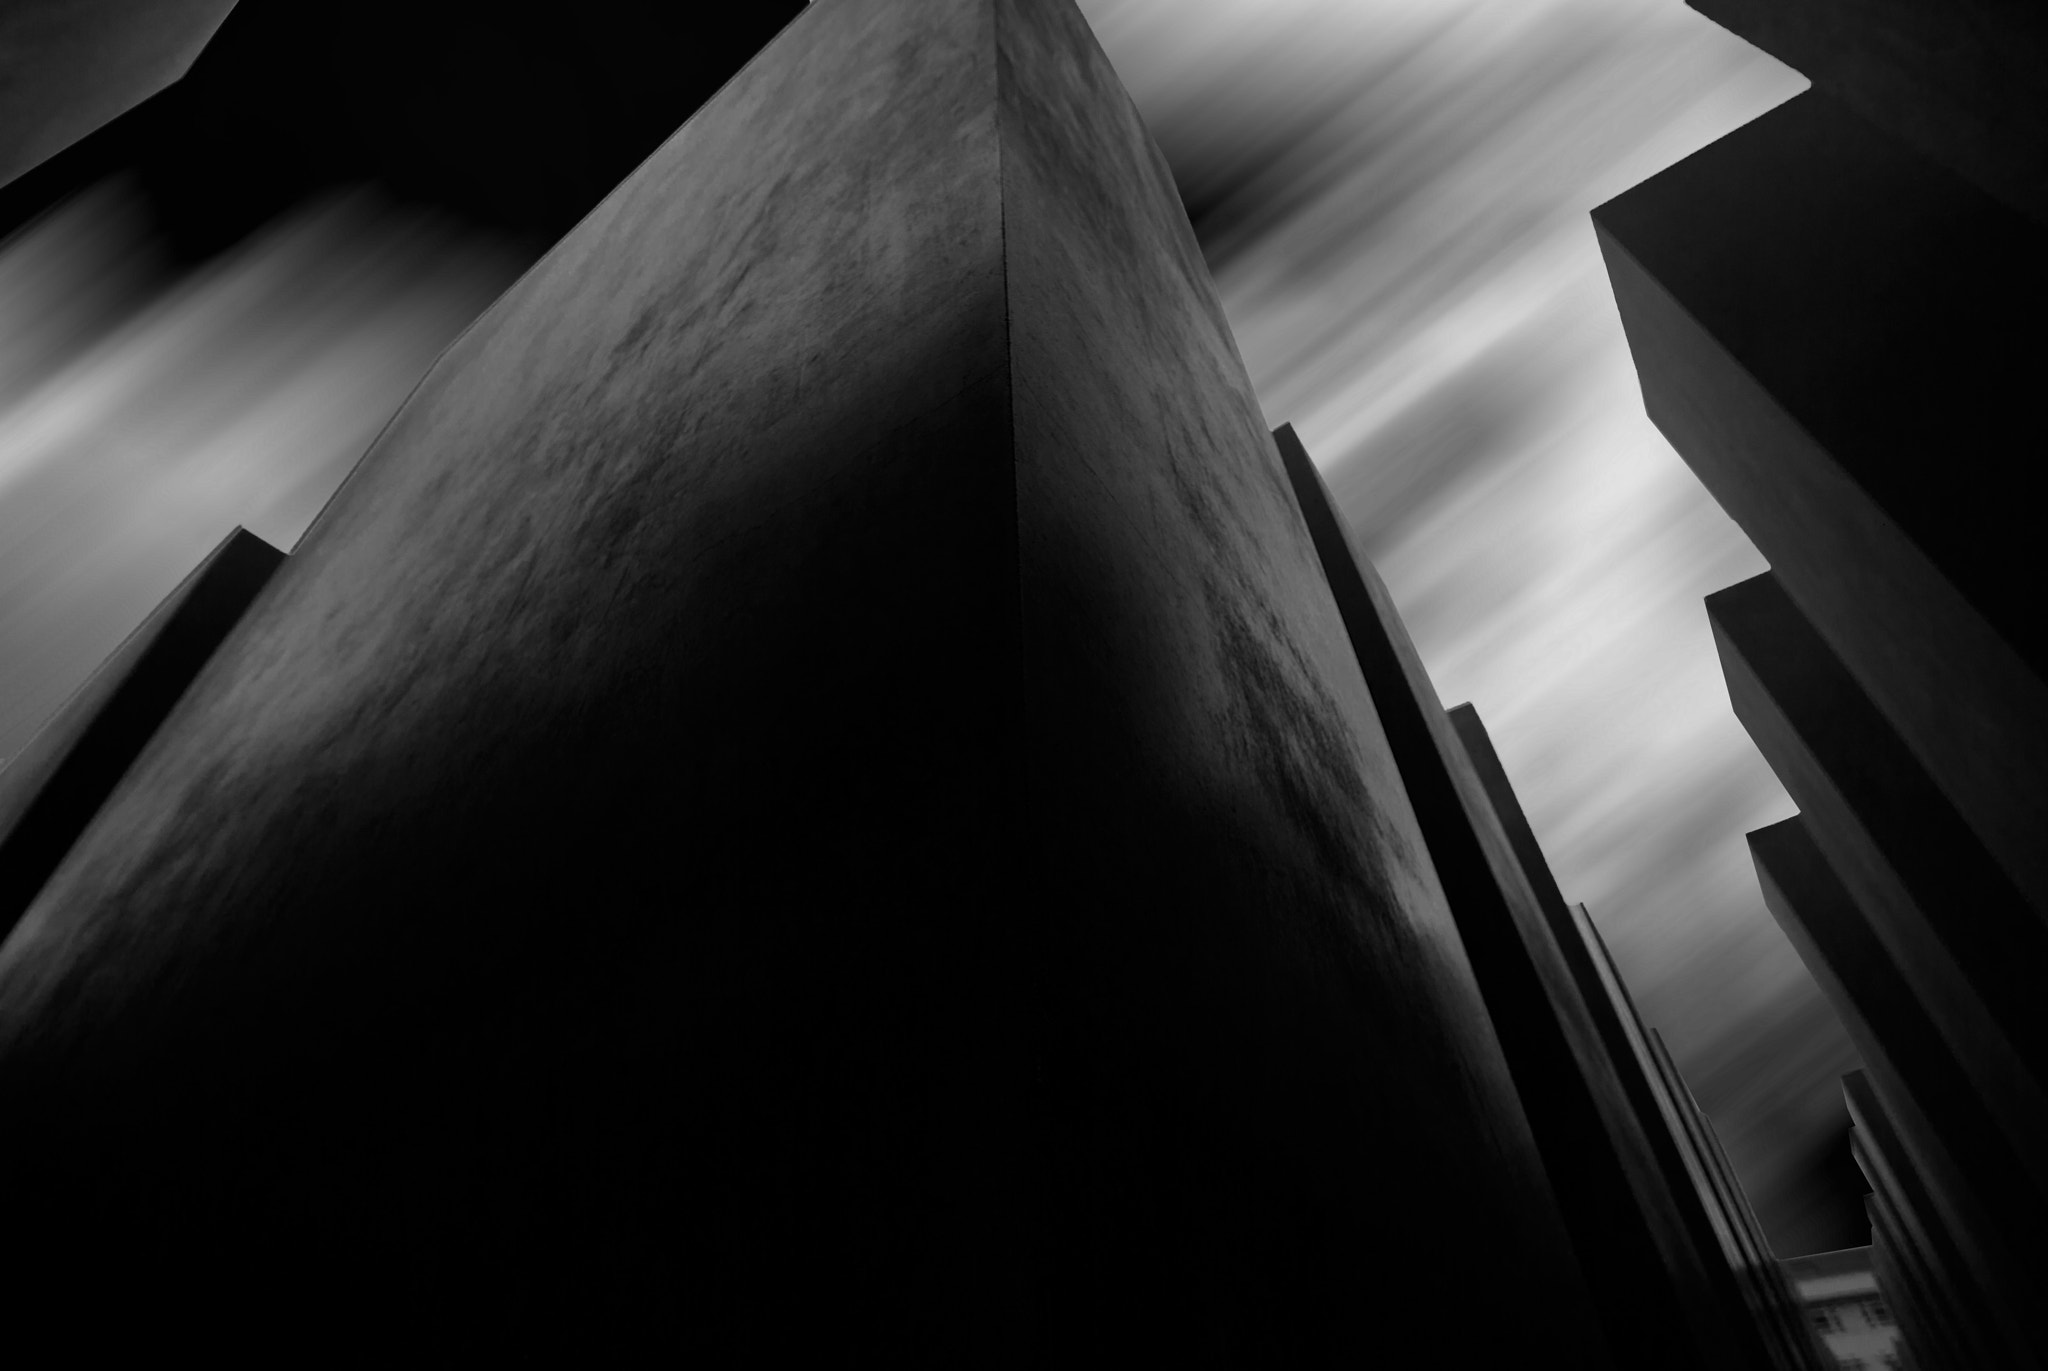 Photograph holocaust memorial by Ina Gat on 500px